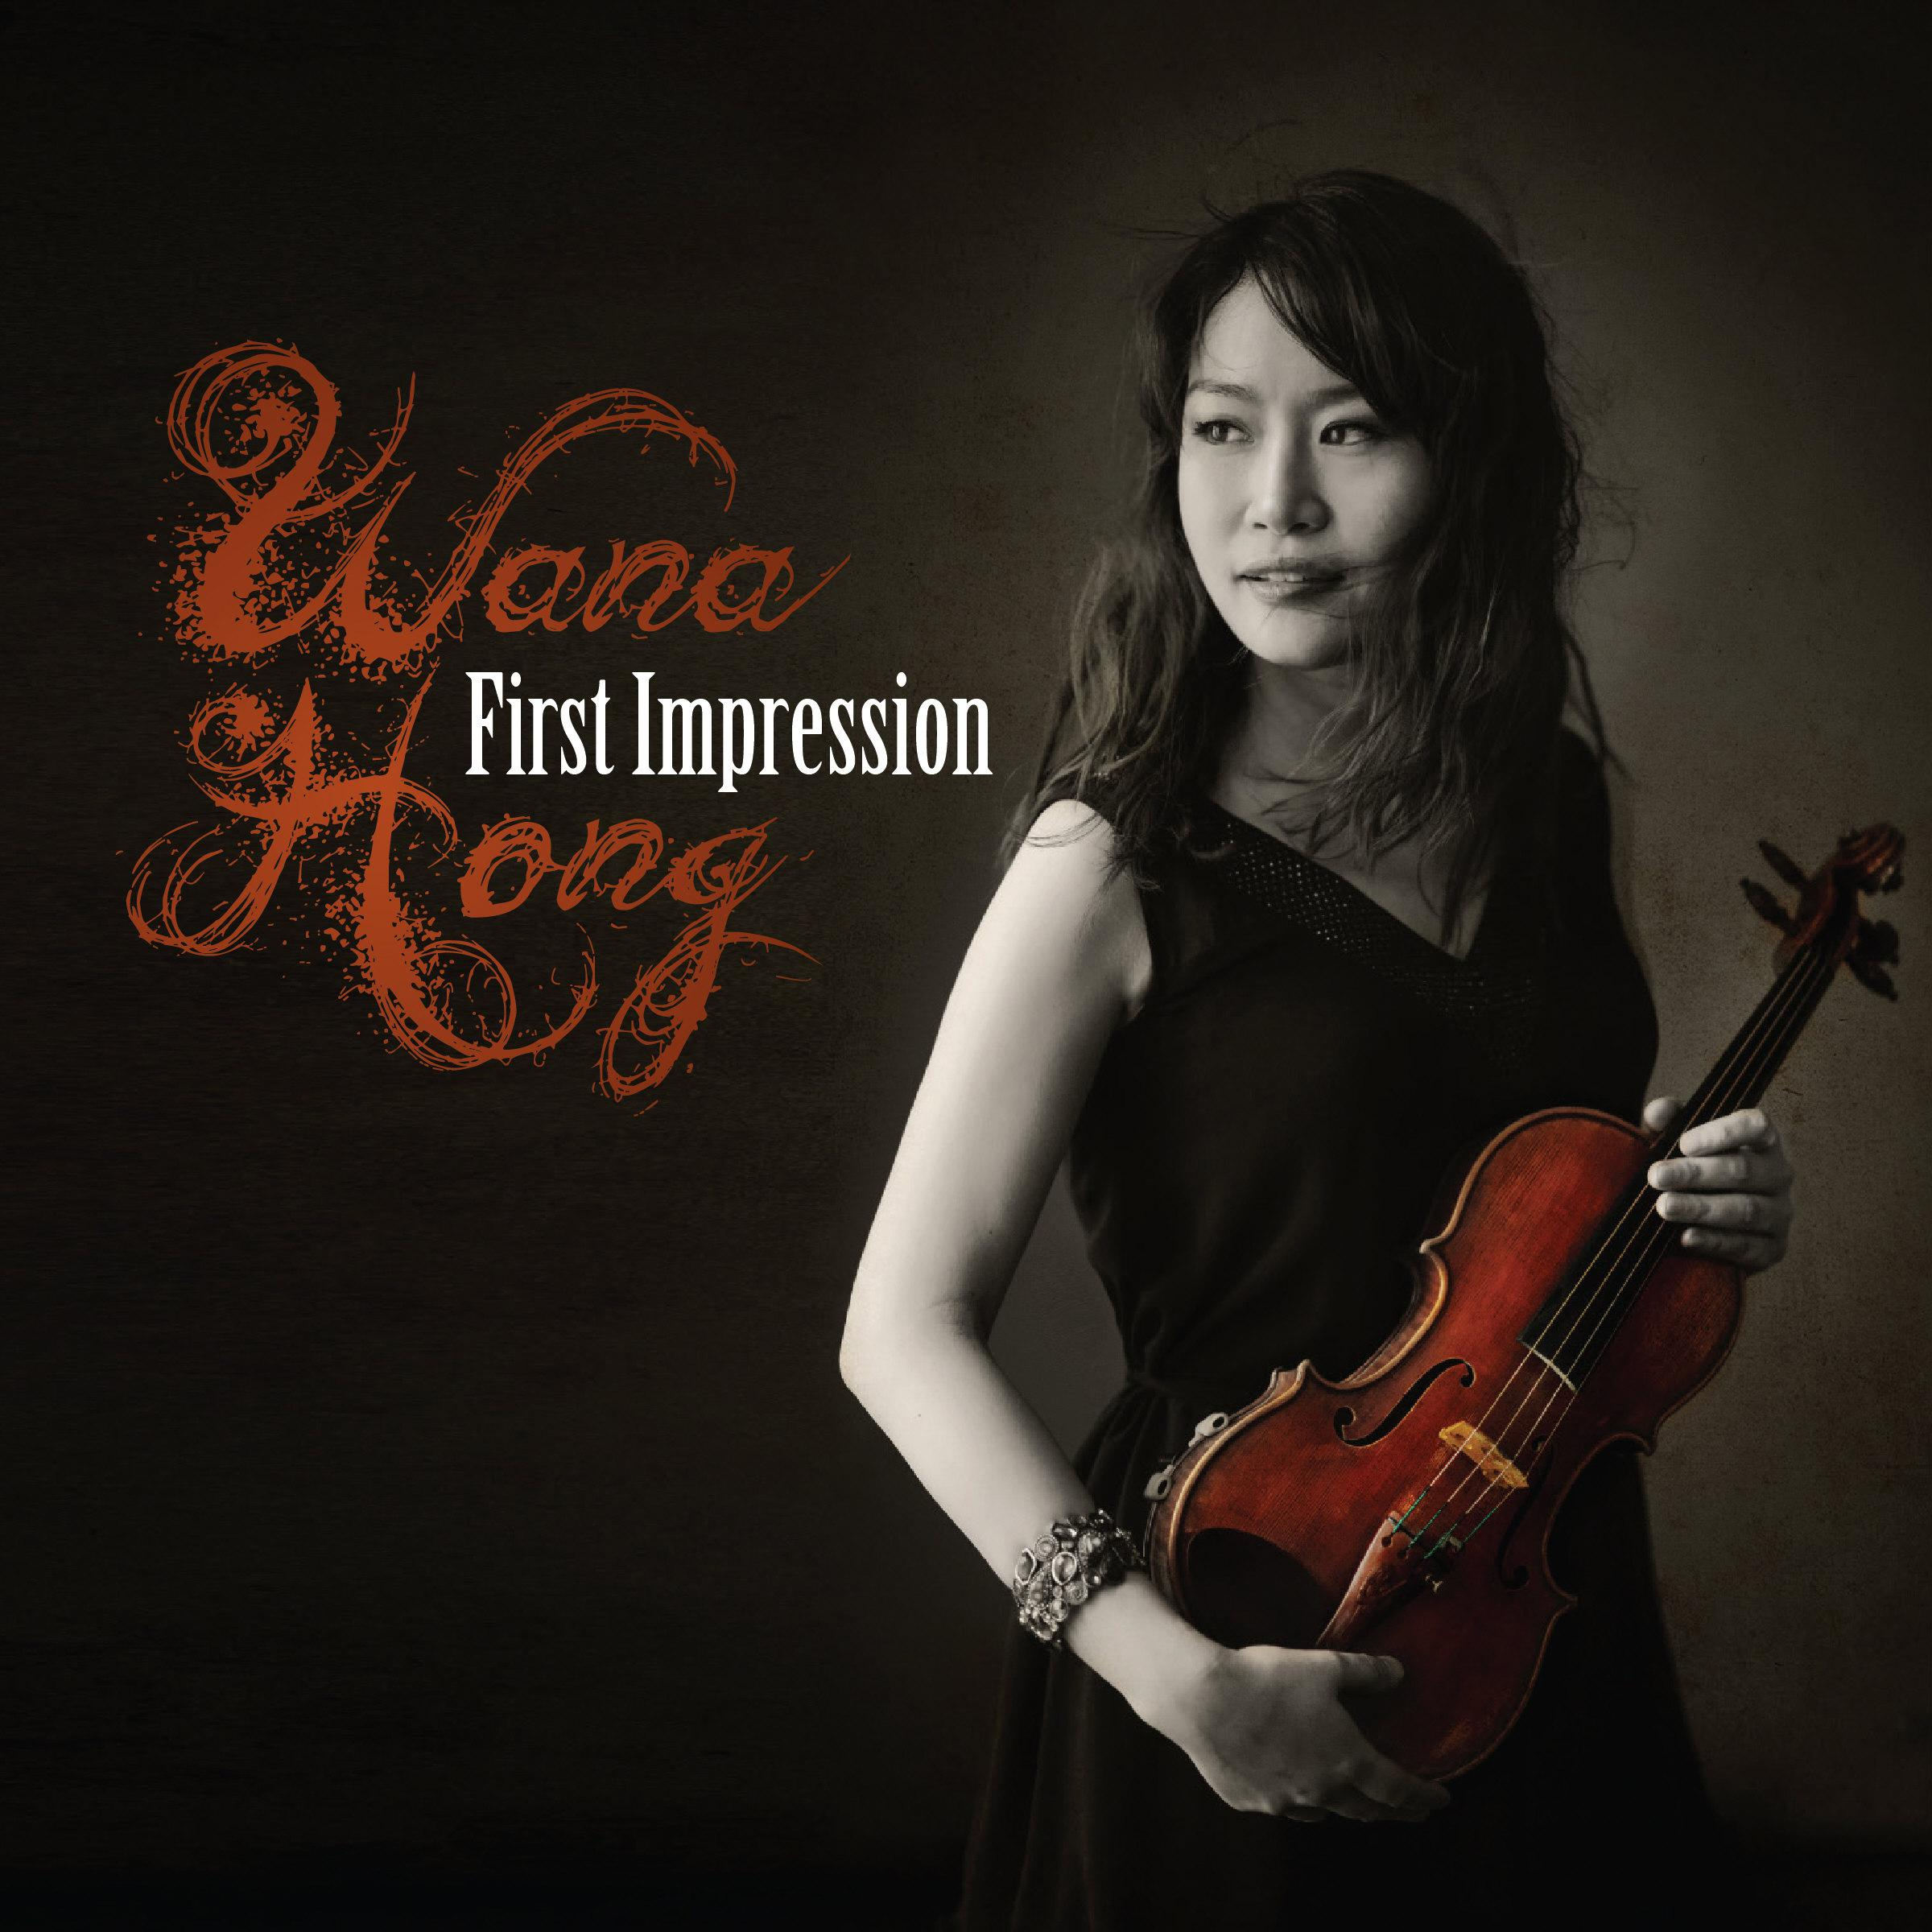 Wana Hong - First Impression (2014)